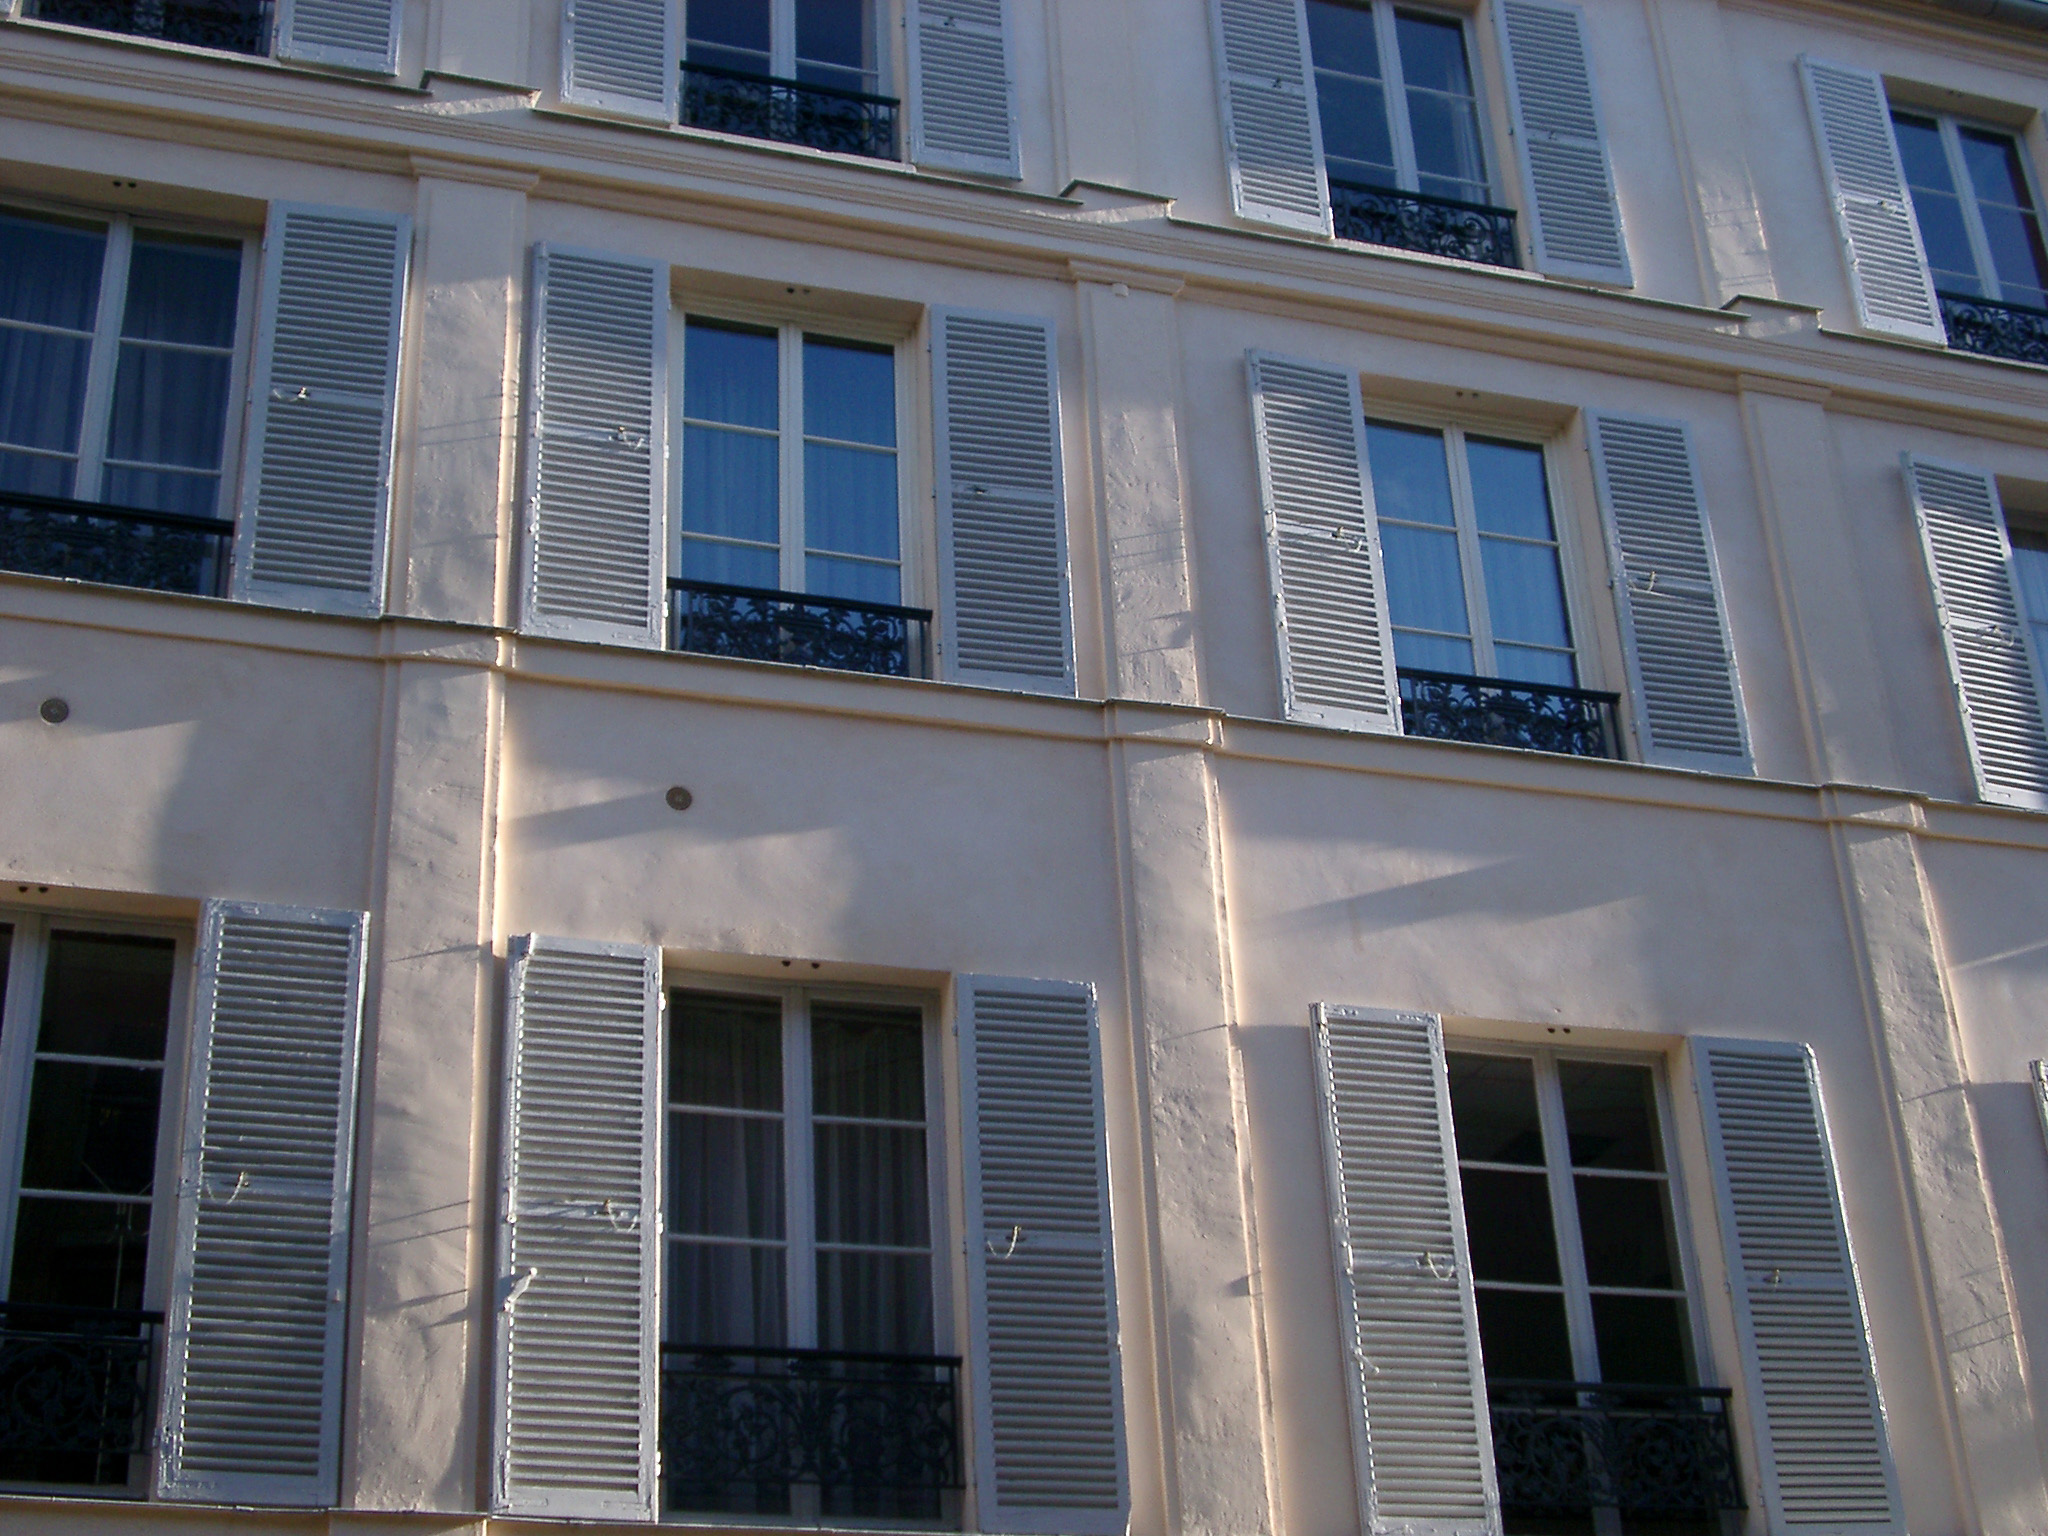 View of the facade of a Paris townhouse with slatted wooden window shutters on the tall windows